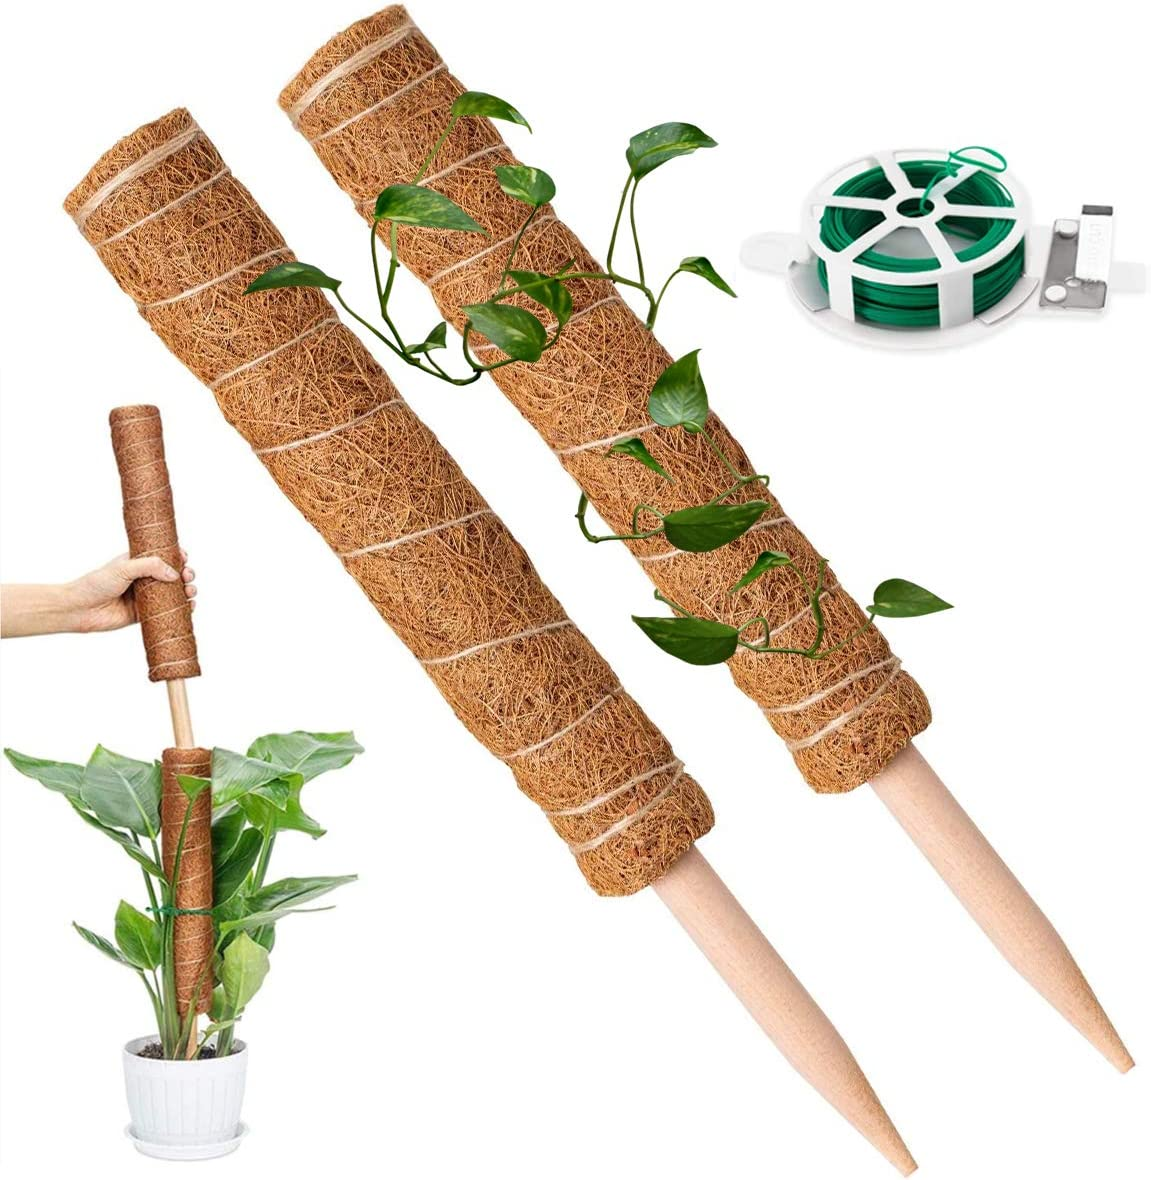 KLATIE 34 Inch Moss Pole, Coir Totem Poles - 2 Packs 17 Inch Coir Poles for Climbing Plant Support with 164 Feet Garden Twist Tie for Moss Monstera and Potted Plants to Grow Upwards…